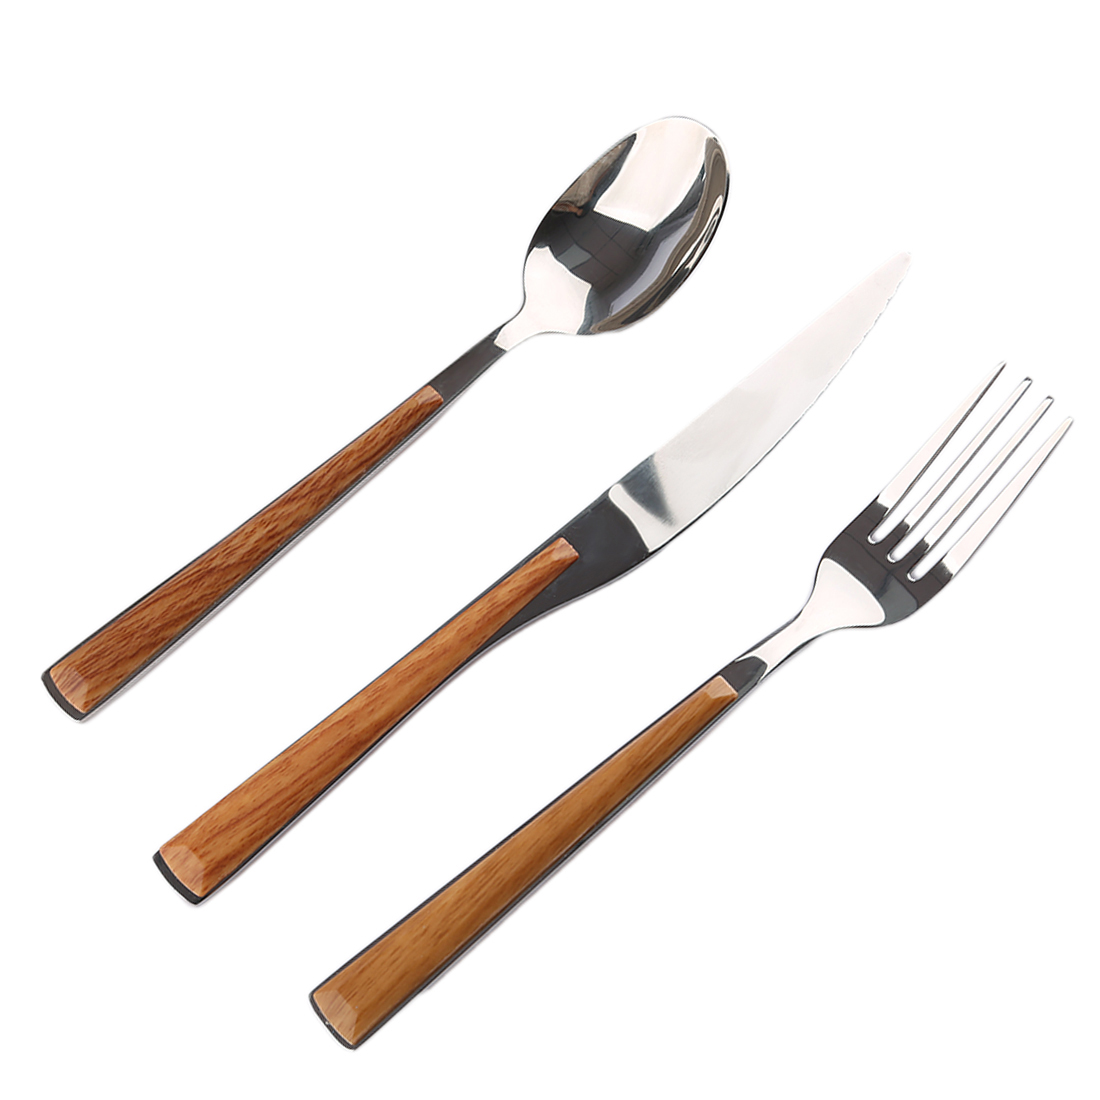 Imitation Wood Handle Stainless Steel Portable Tableware Dinnerware Travel Cutlery Set with Fork Spoon Knife - Burlywood